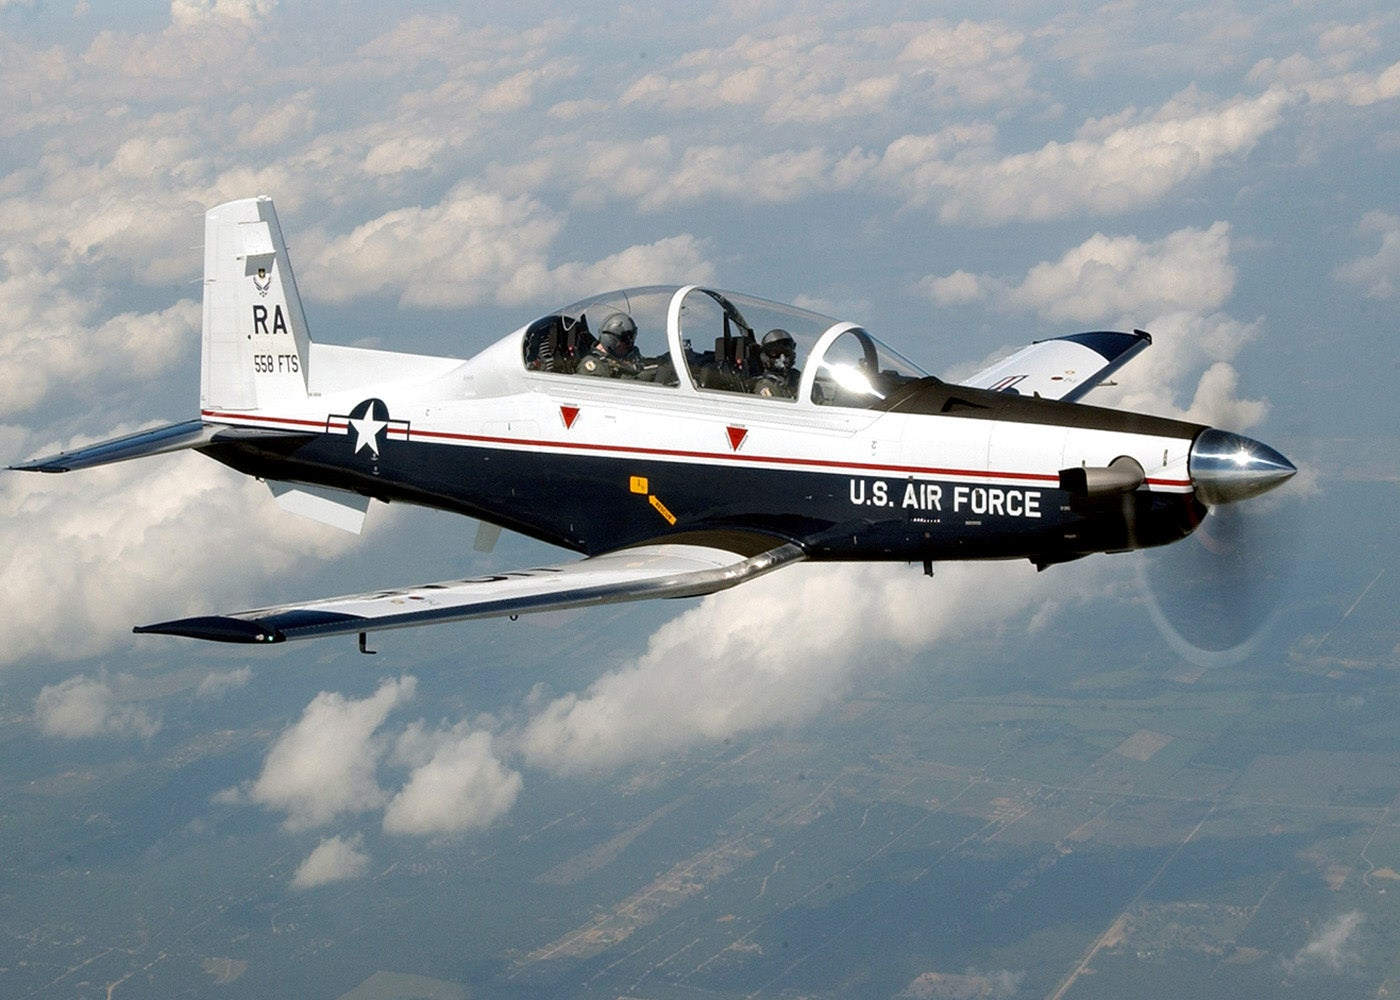 The Air Force killed a combat demo for light attack aircraft